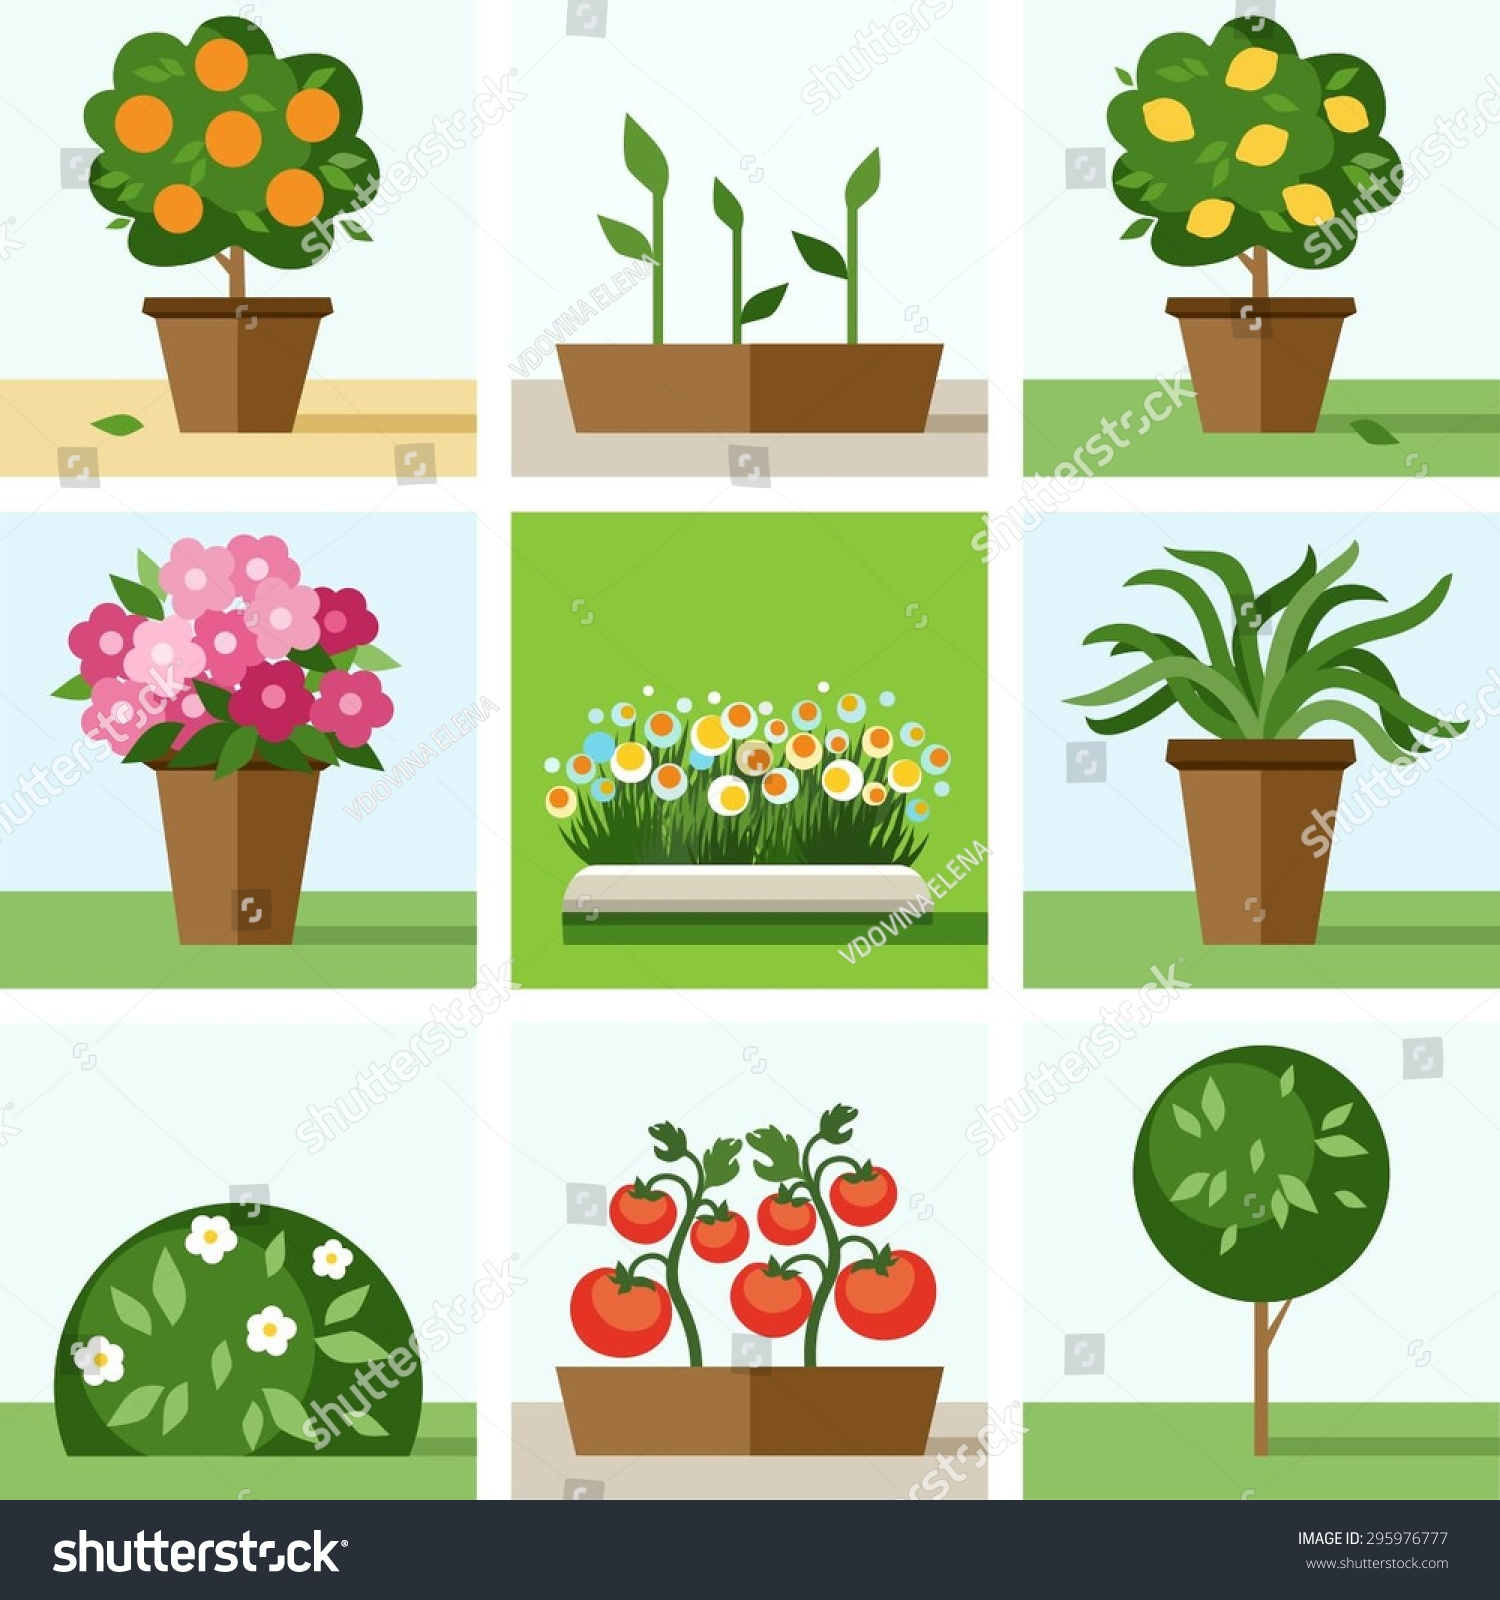 Vegetable garden graphic - Vegetable Garden Graphic